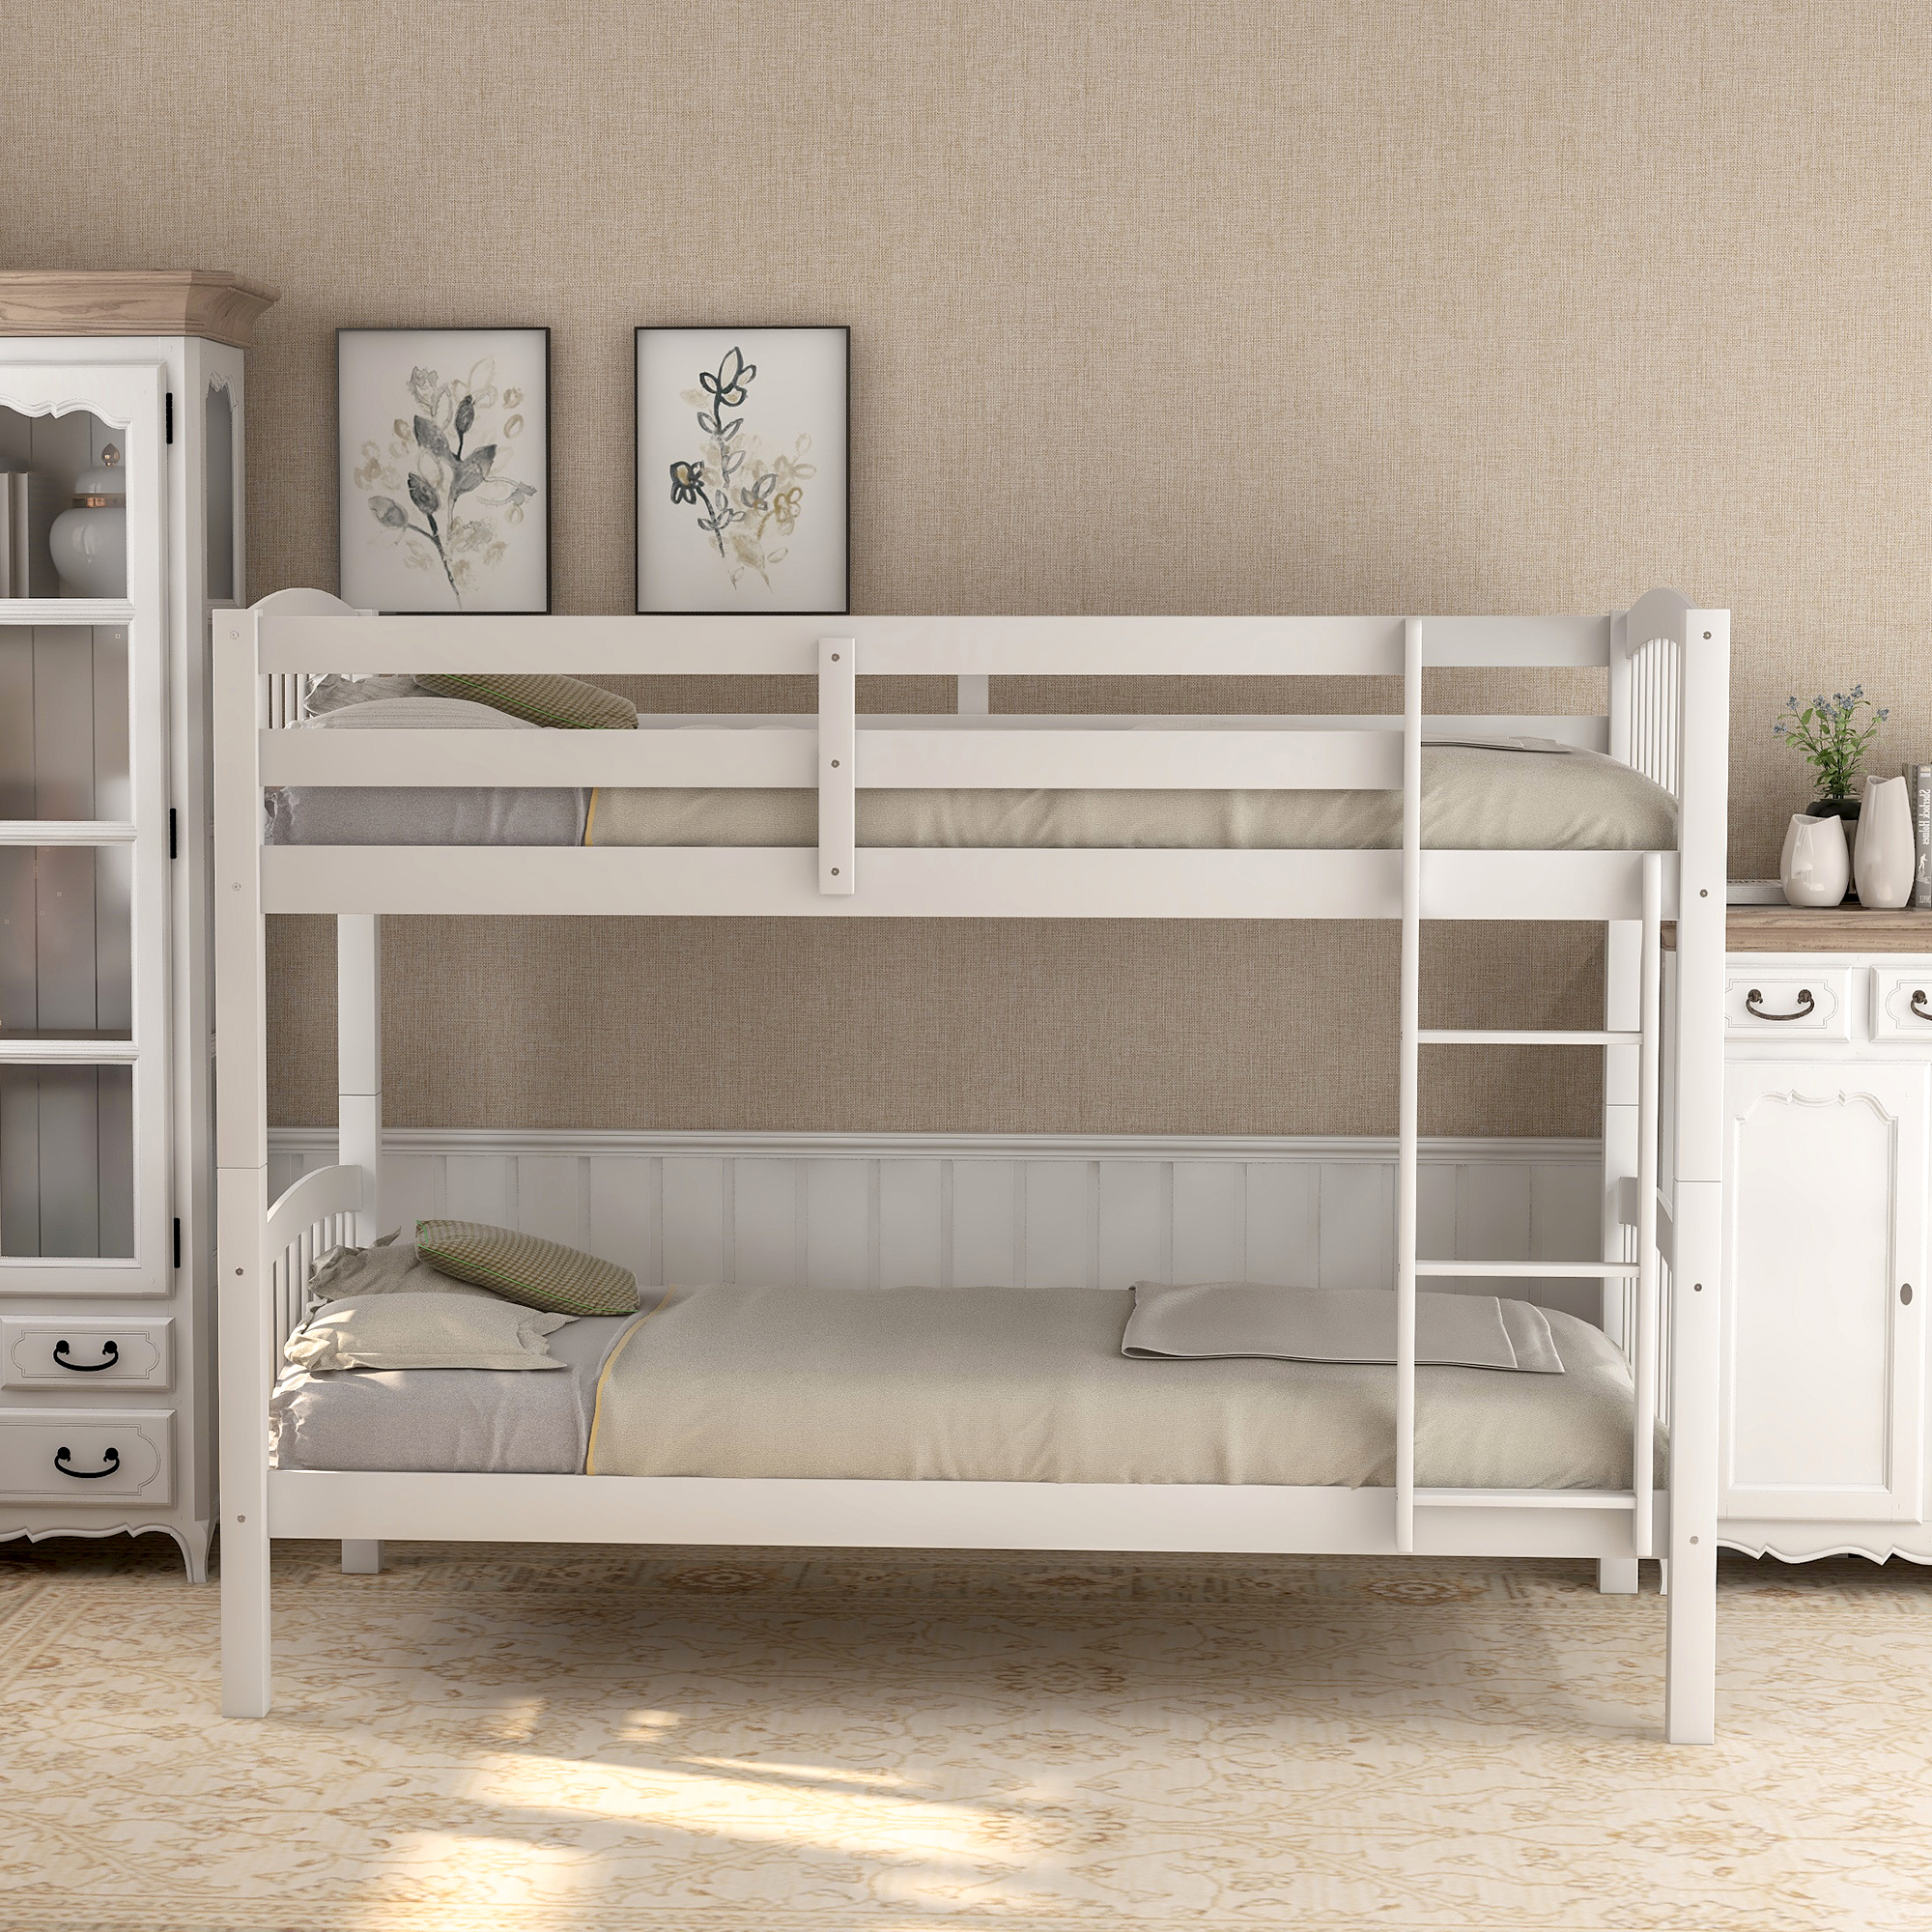 clearance kids bunk beds for boys girls twin over twin on walmart bedroom furniture clearance id=30760